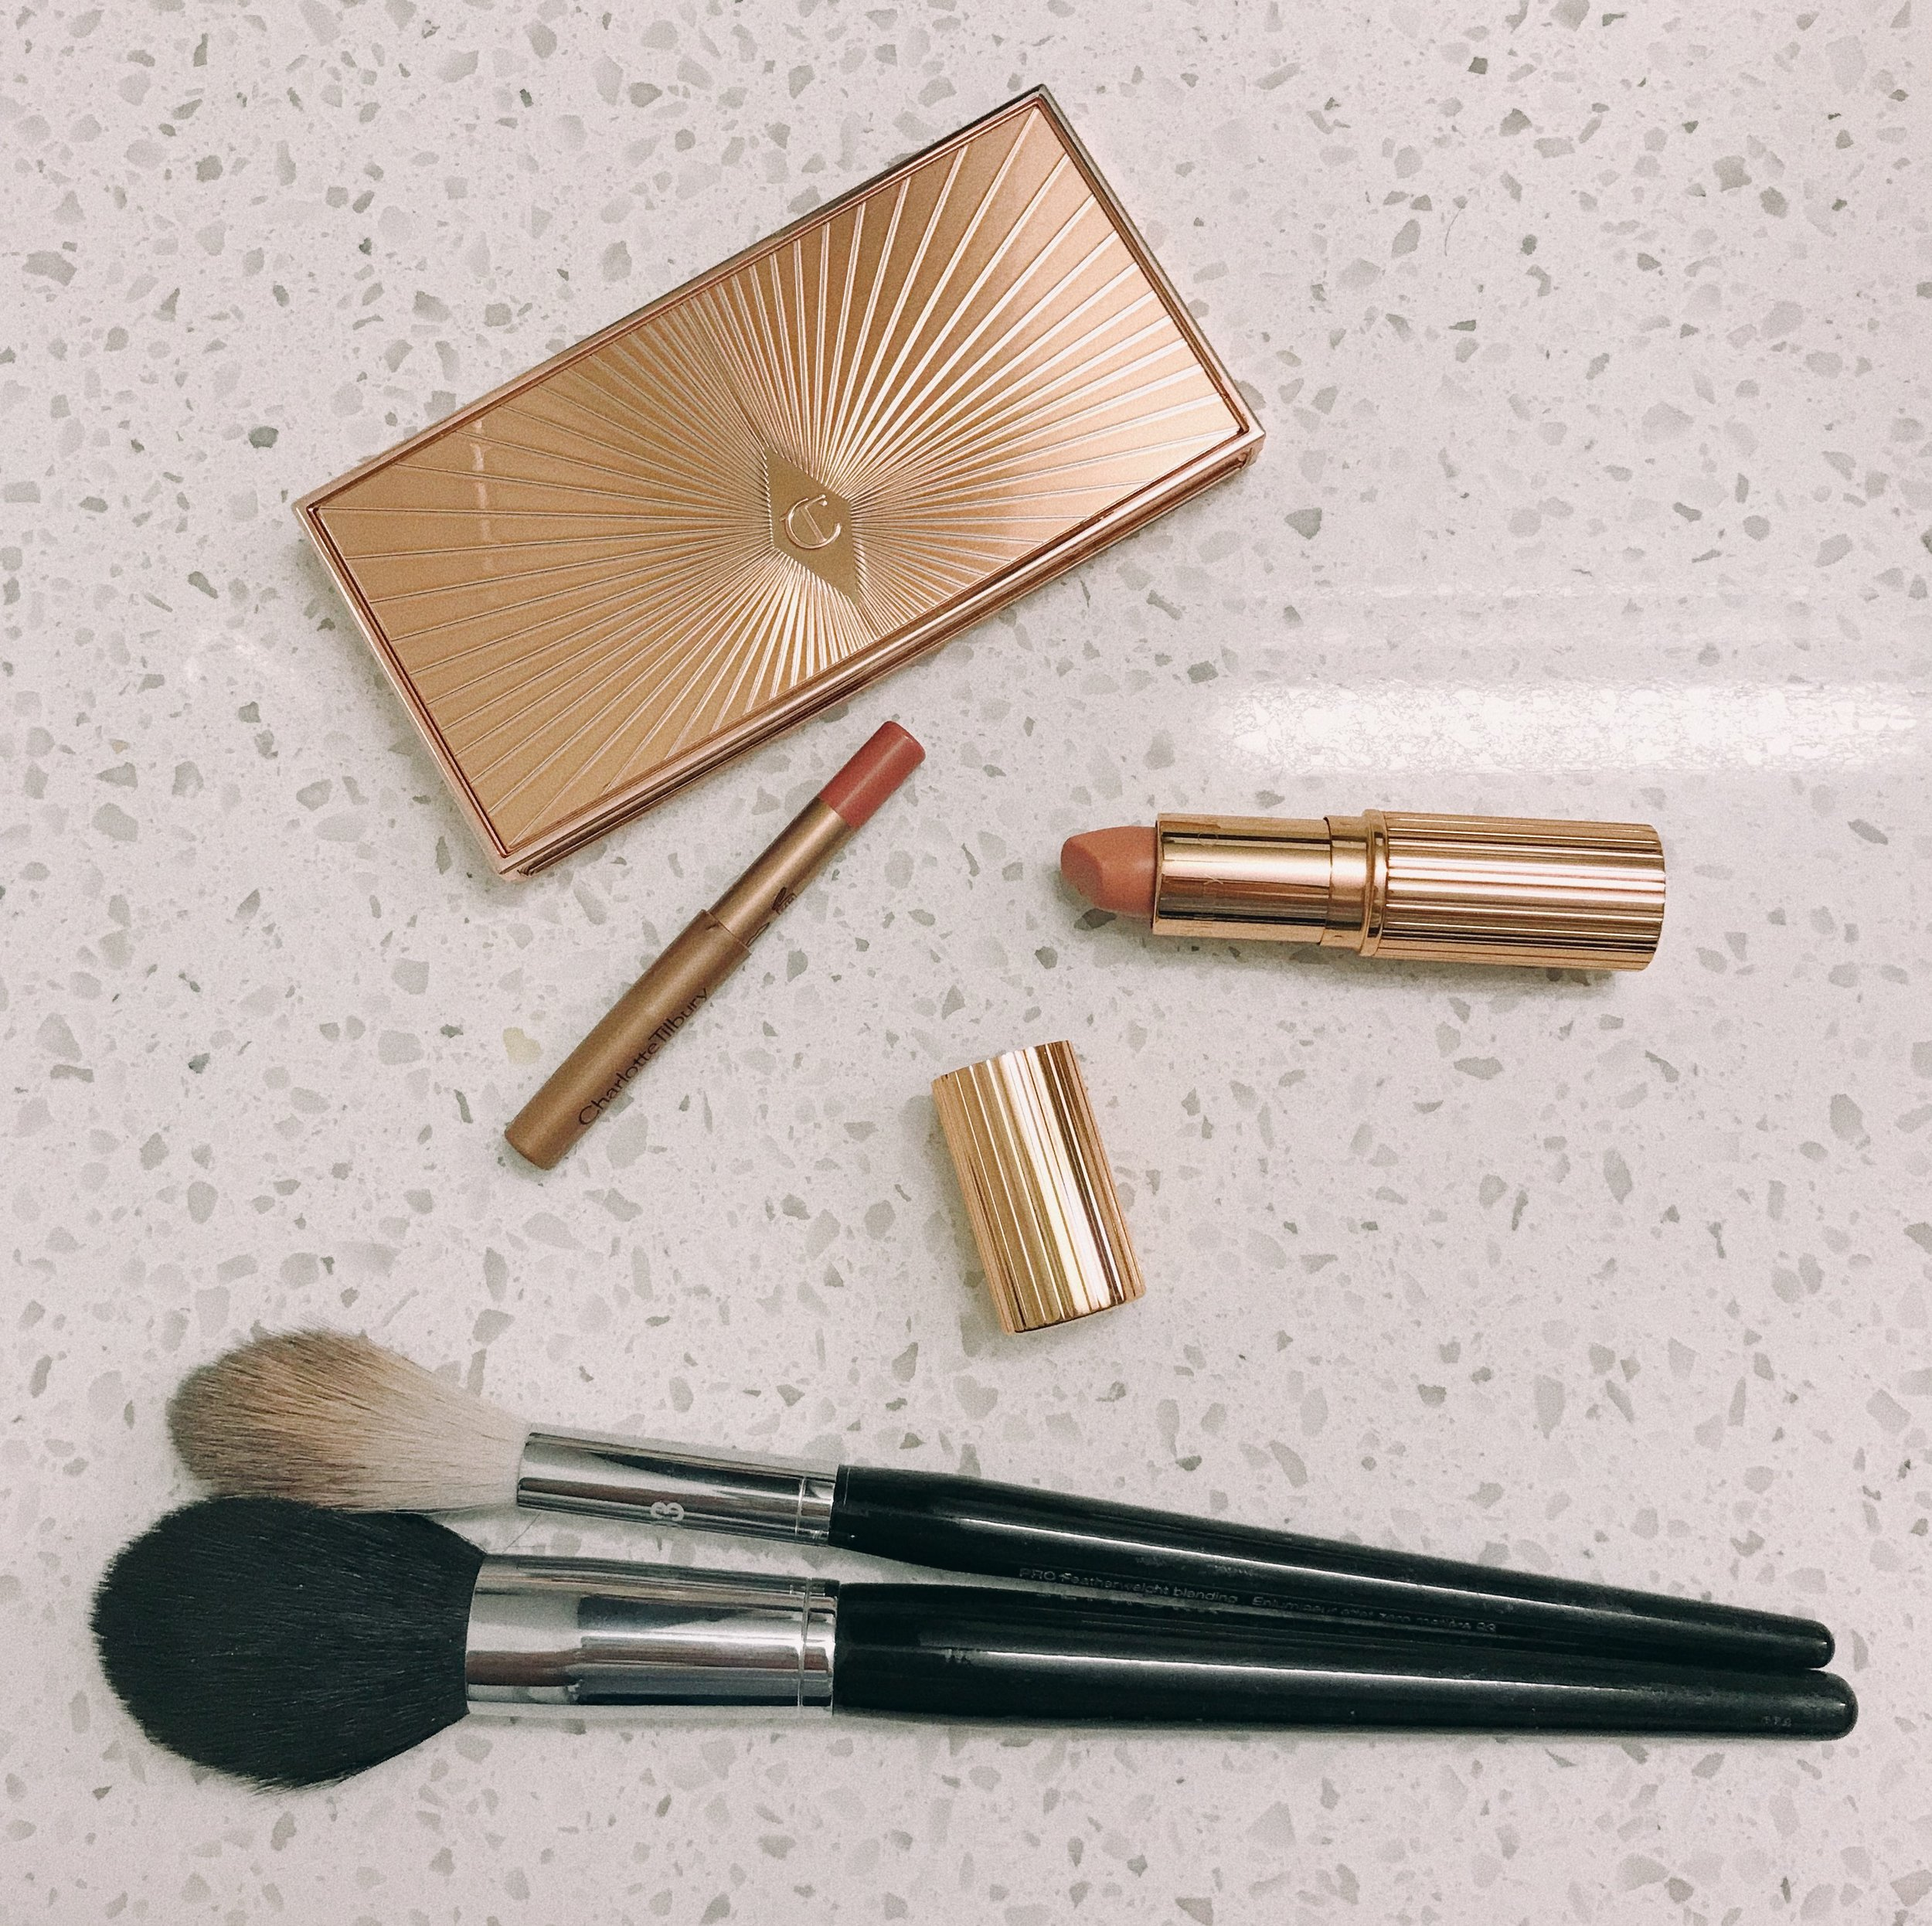 New Charlotte Tilbury Makeup Products